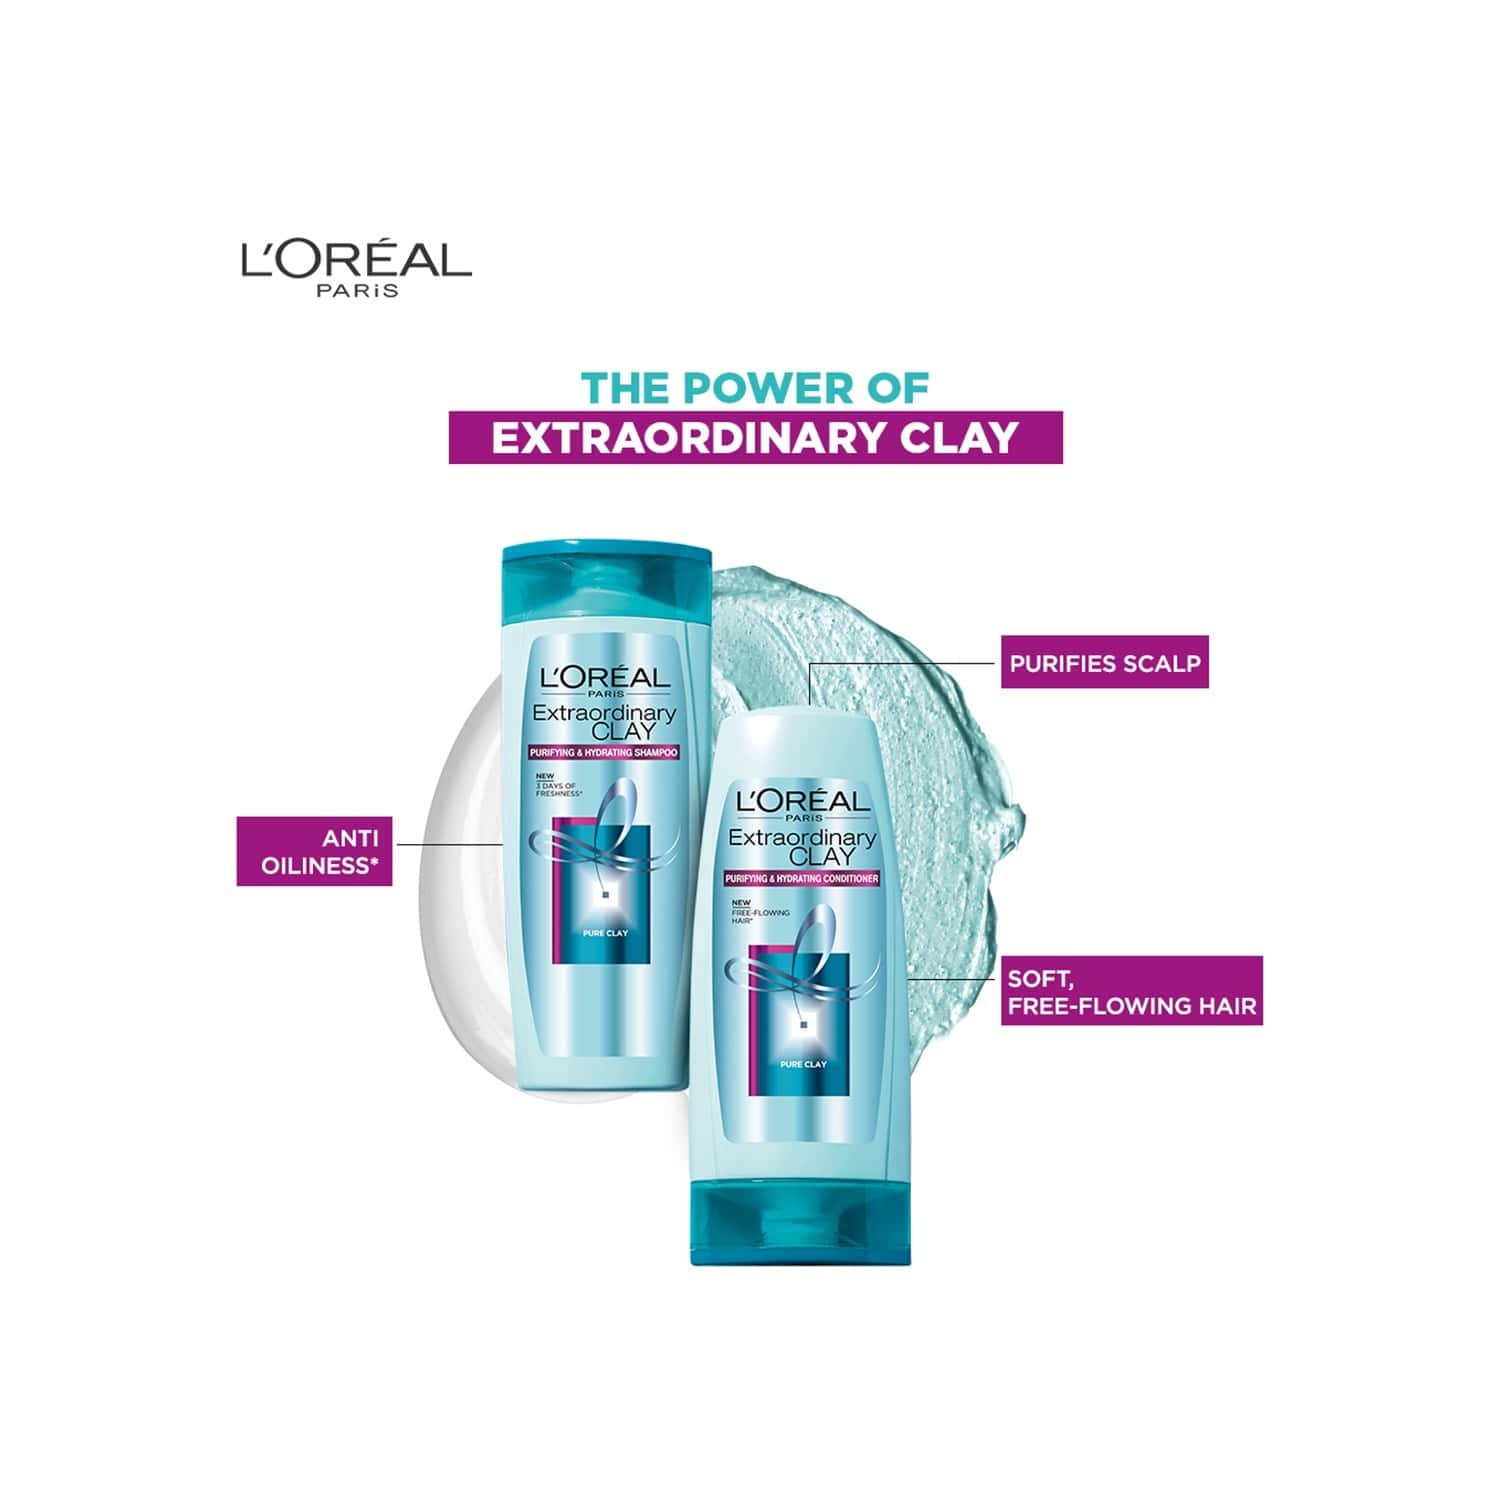 L'oreal Paris Extraordinary Clay Hair Conditioner Bottle Of 175 Ml